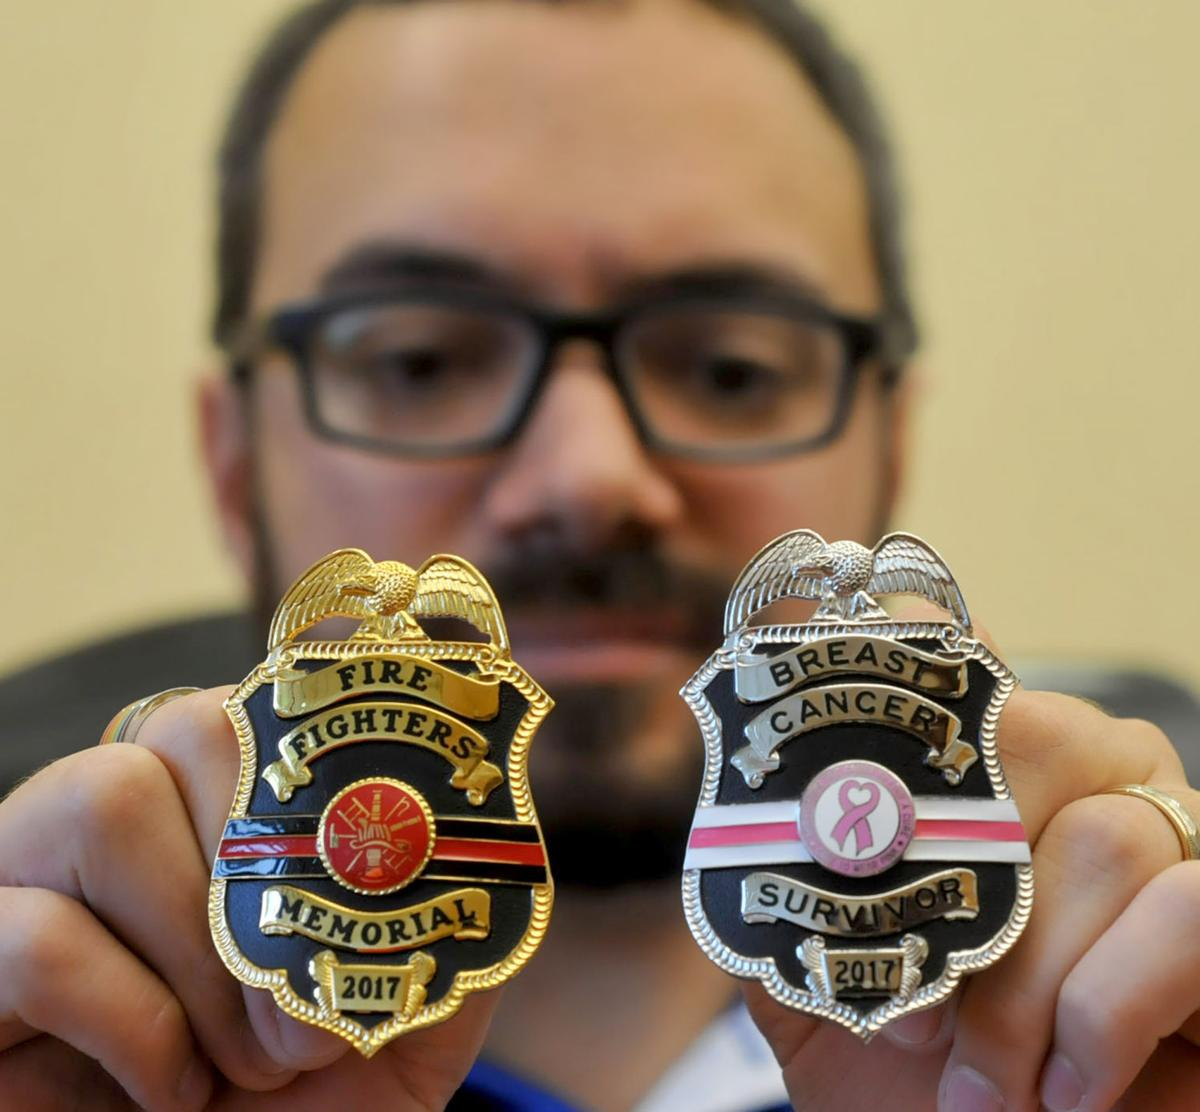 North Attleboro company creates memorial badges for fallen